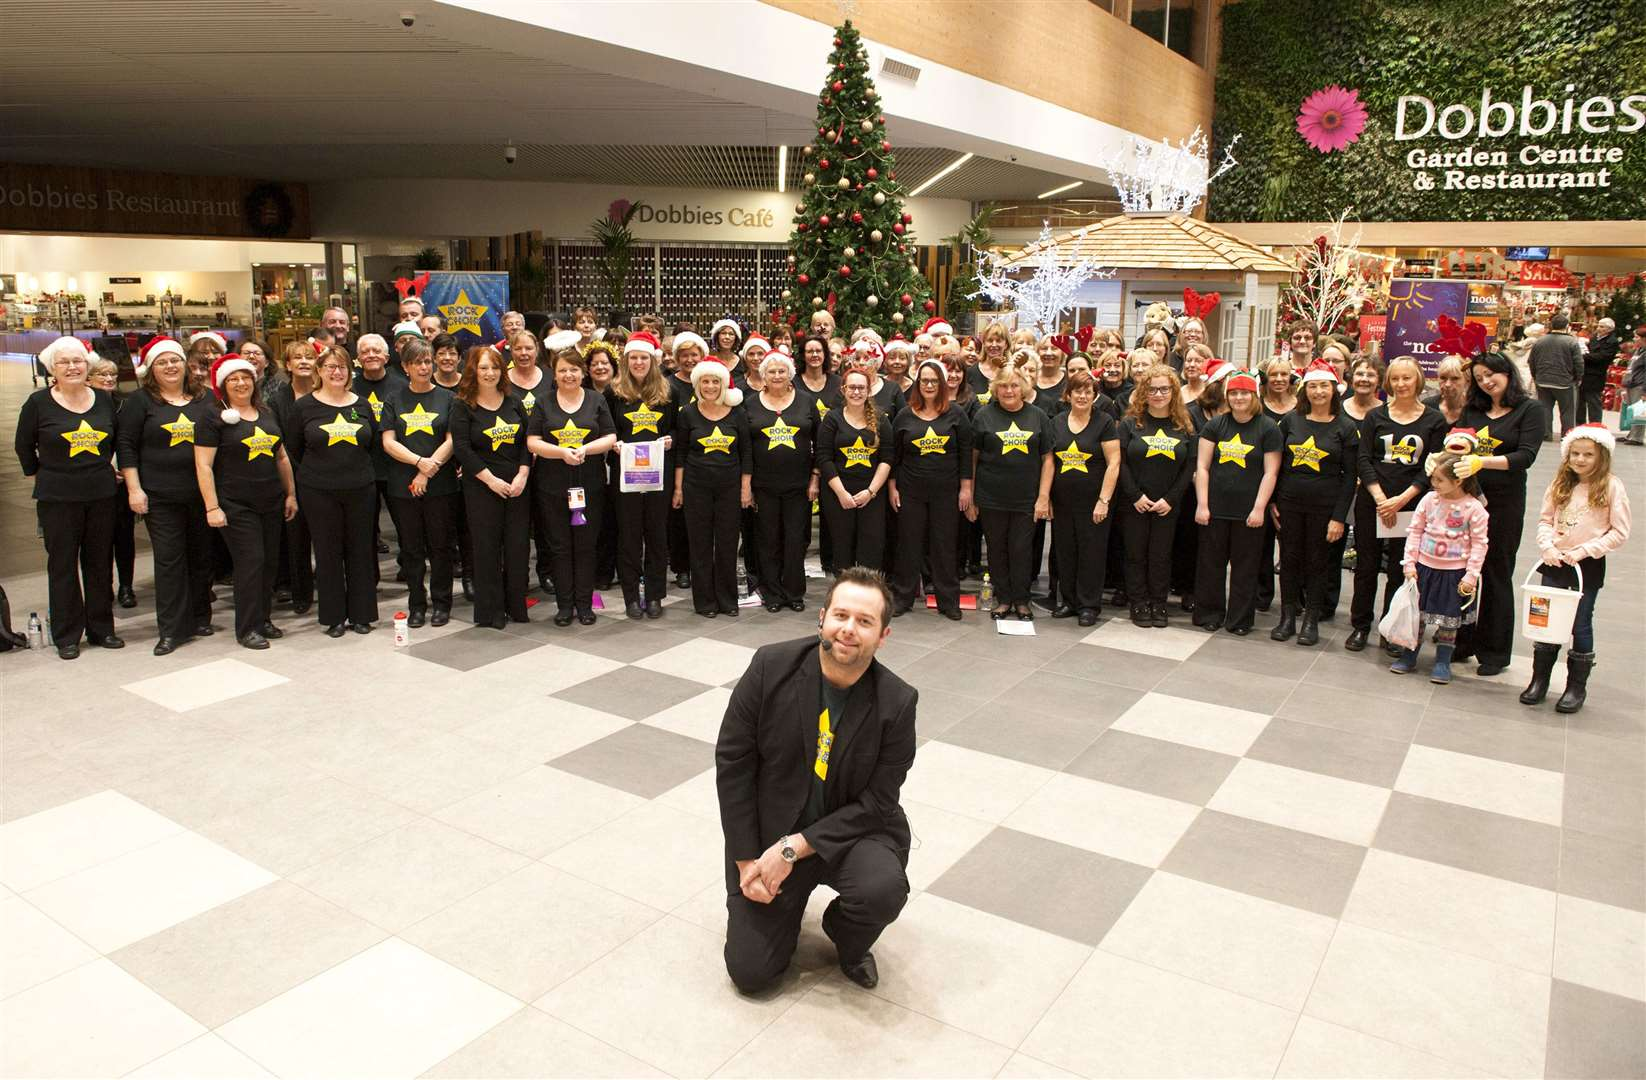 West Norfolk Rock Choir previously performing at Tesco Hardwick King's Lynn. Pictured is Mike Tandy with choir